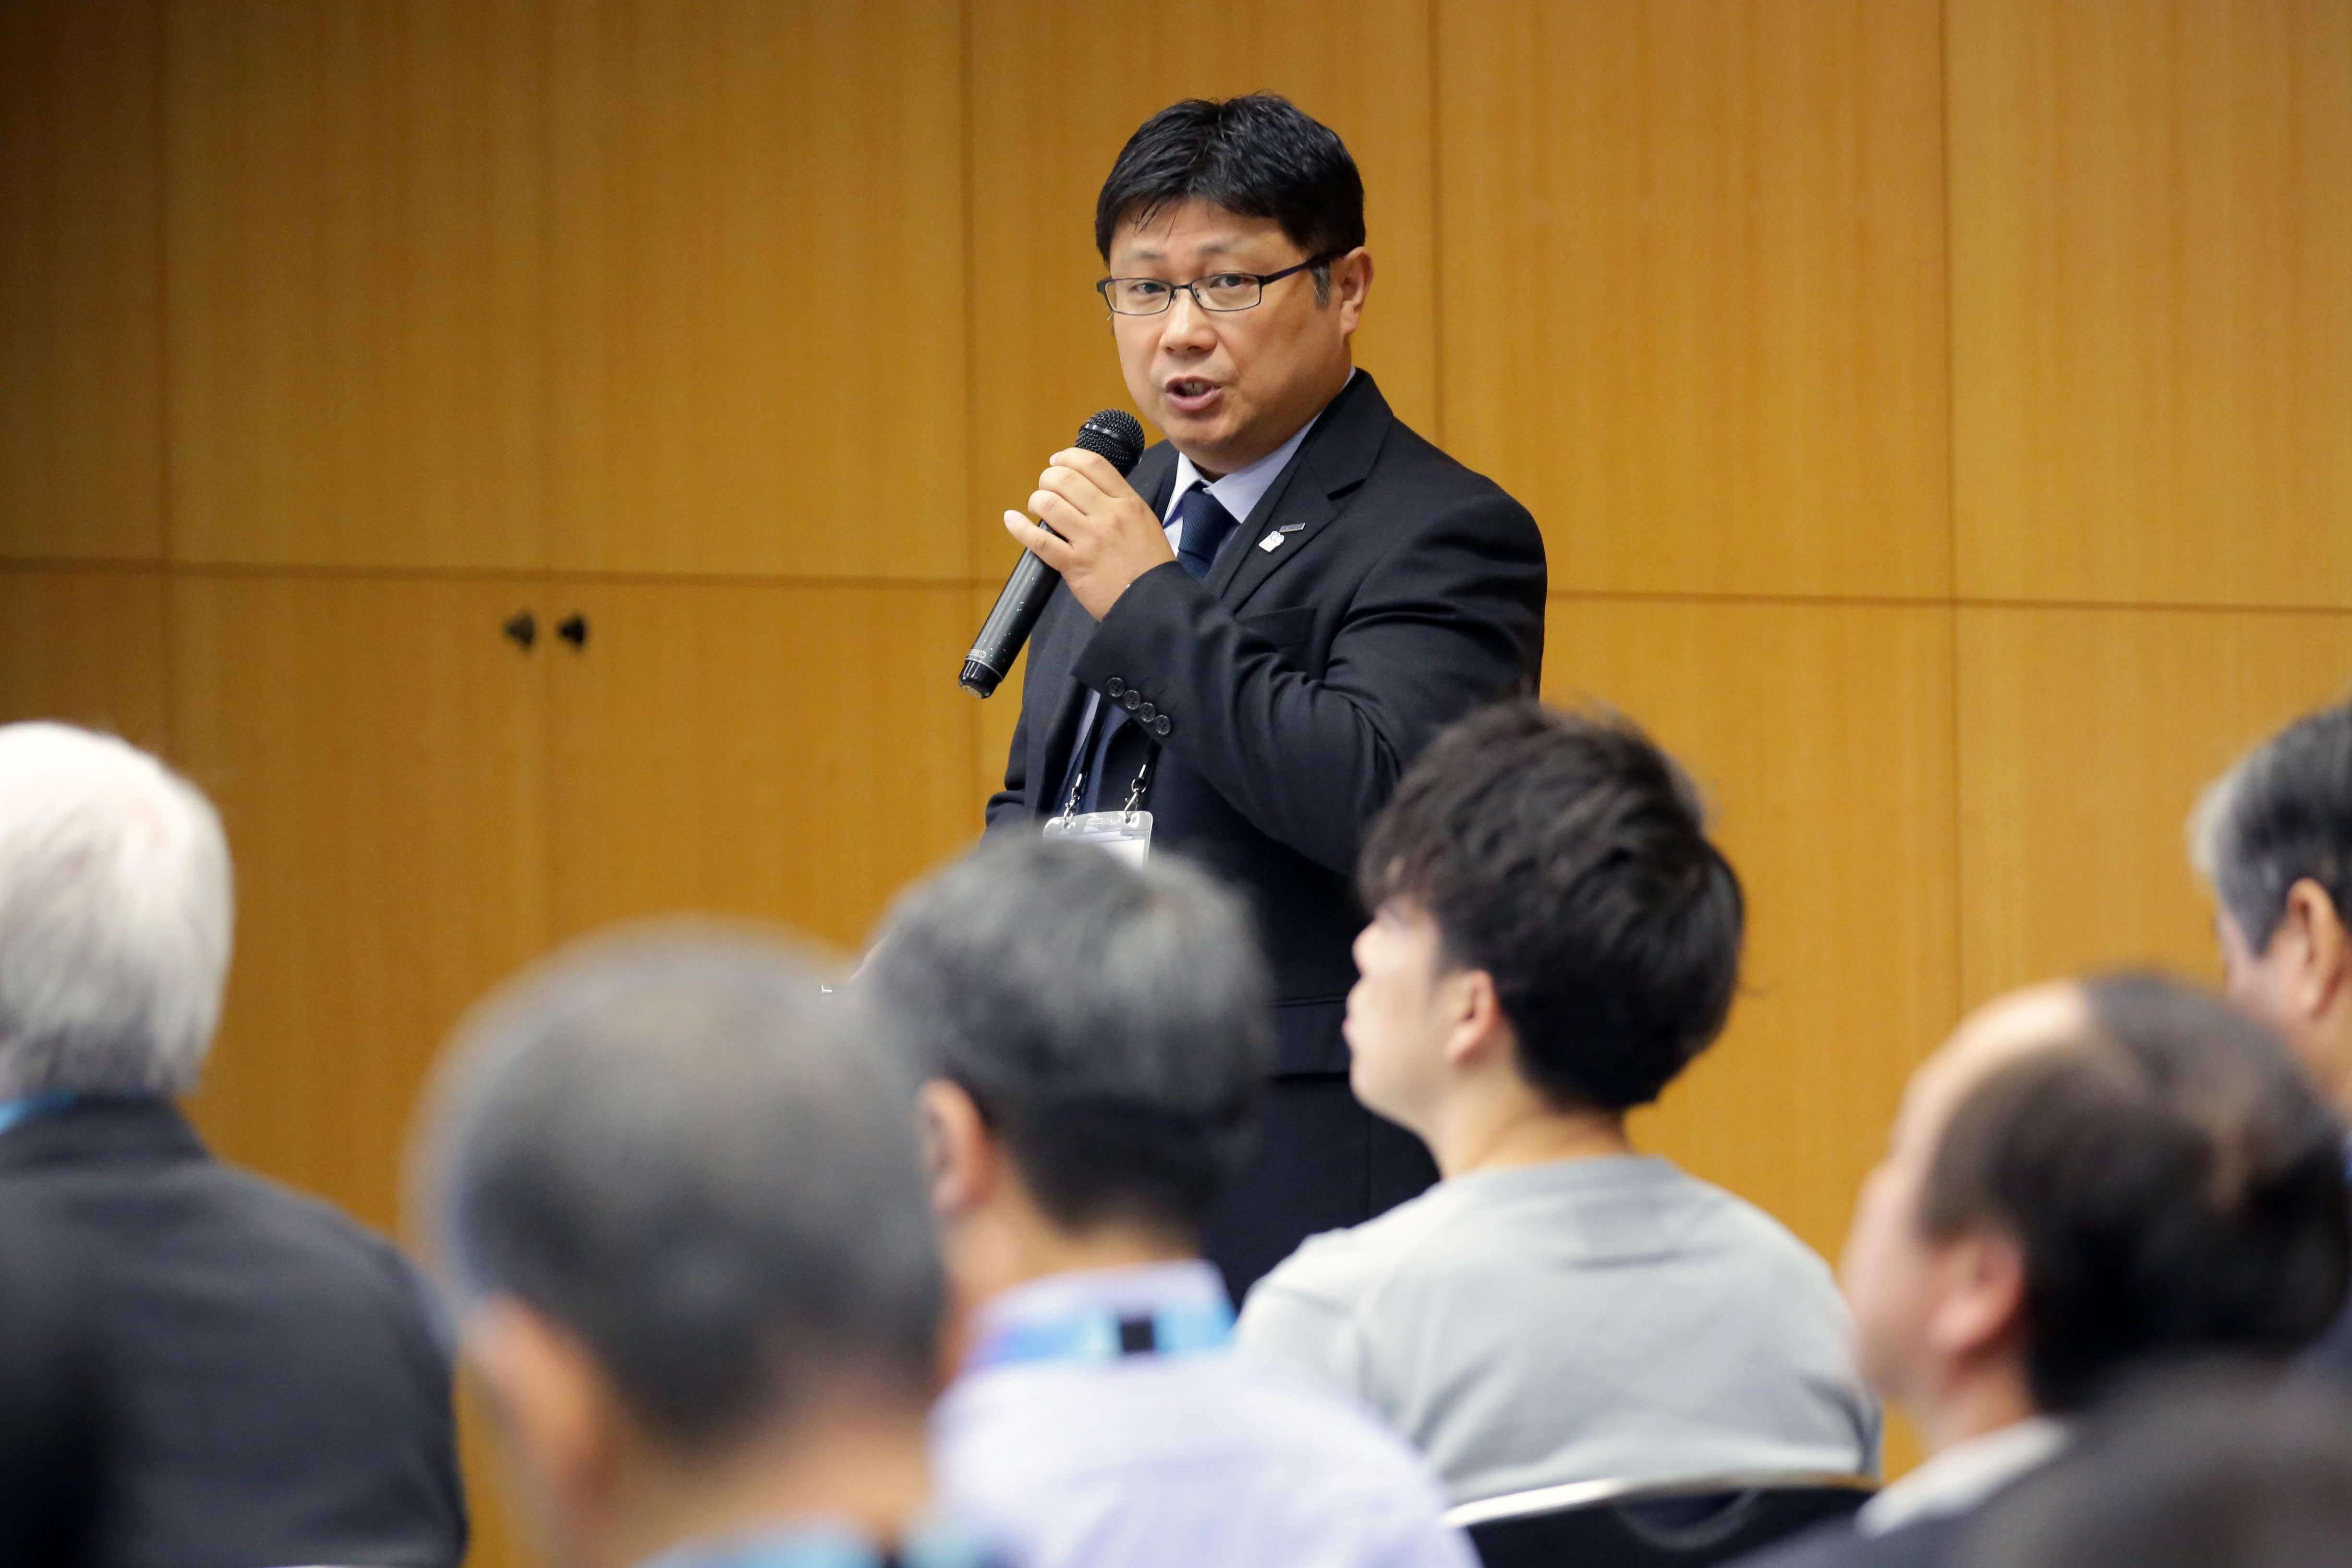 Seminar: Compact and Highly Reliable Battery for IoT Society / IoT社会に貢献する小型、高信頼性電池の開発